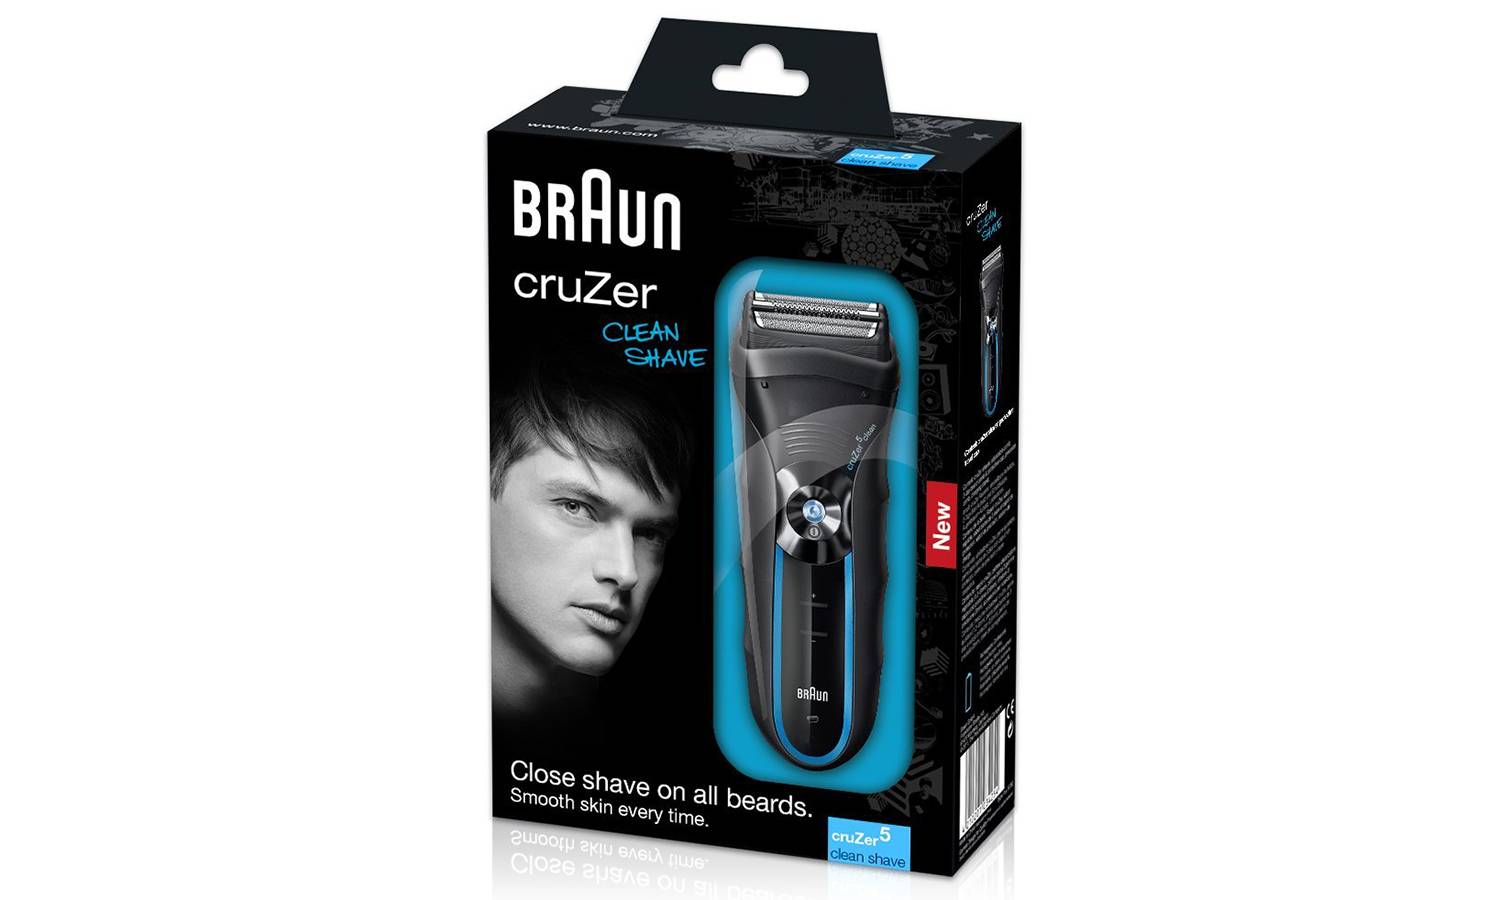 Braun Cruzer 5 Clean Shave Electric Foil Shaver